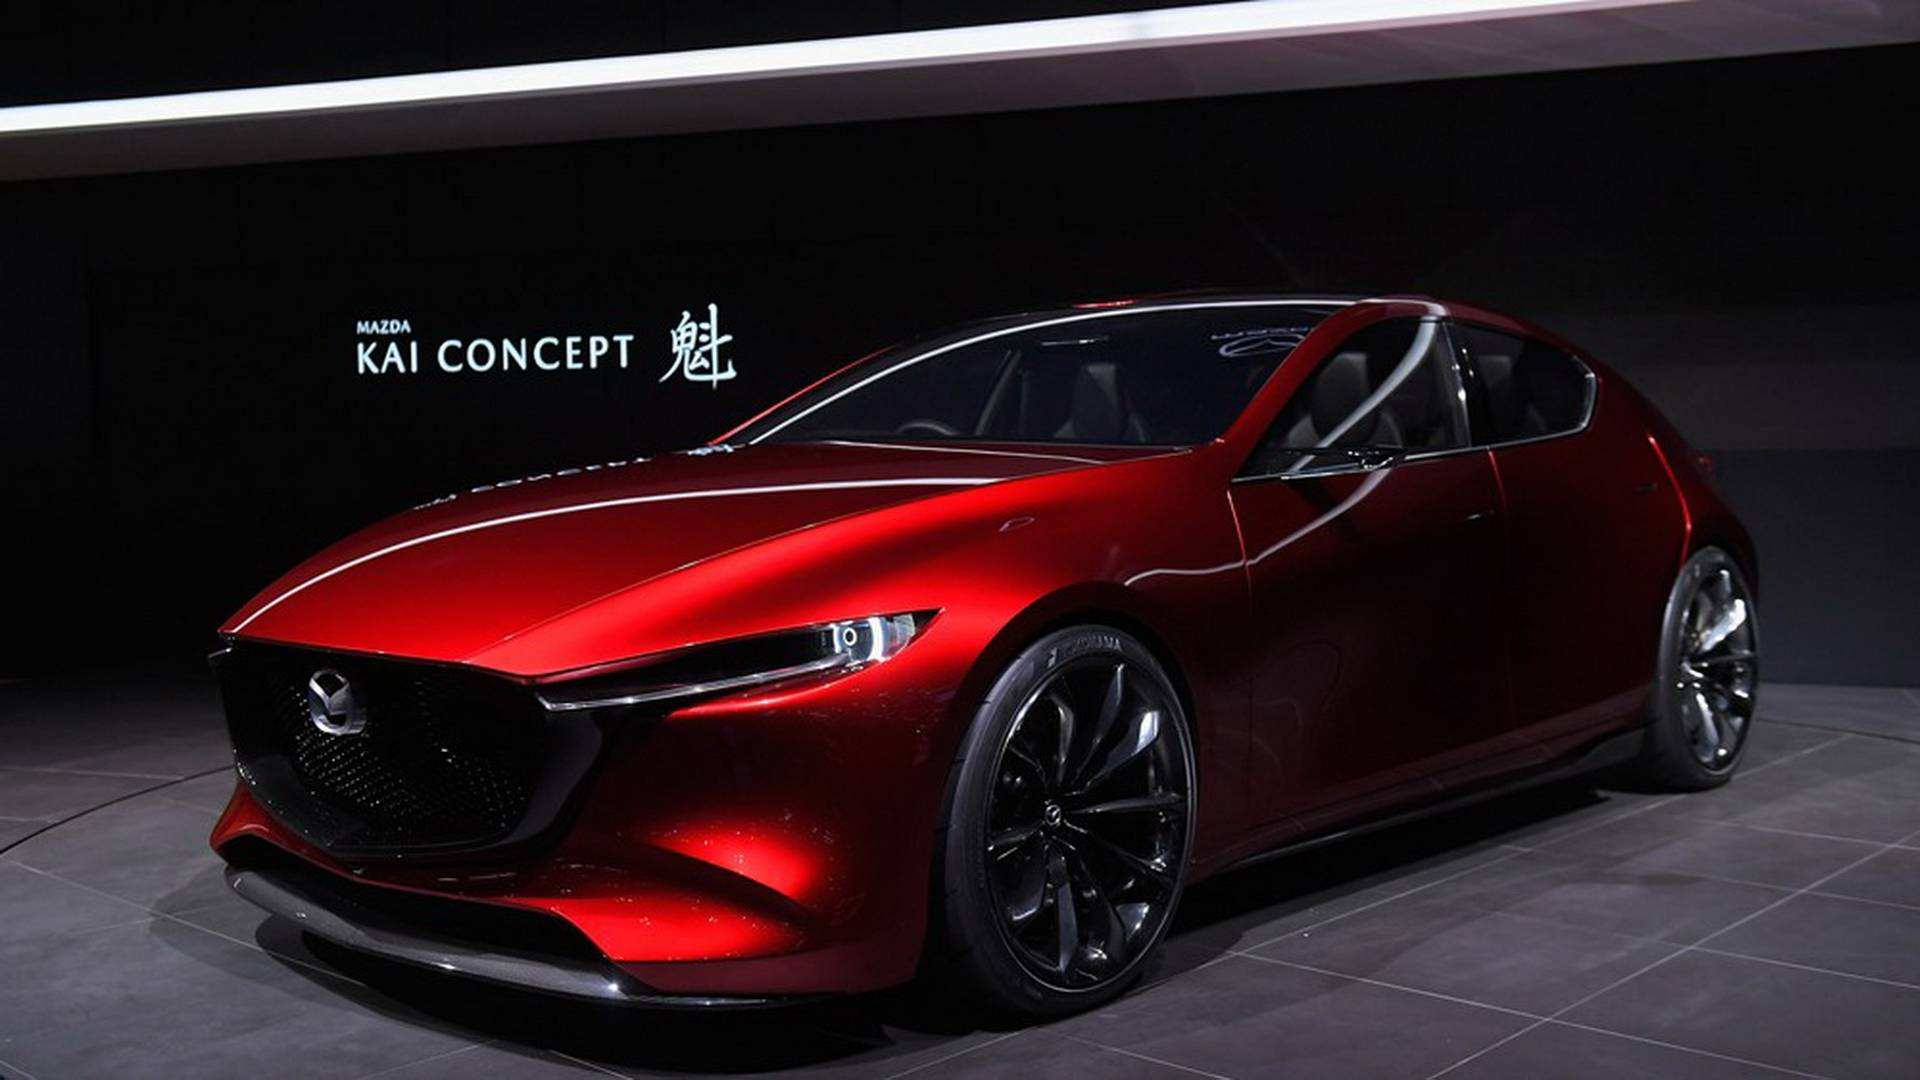 98 New 2020 Mazda 3 Fuel Economy Pricing with 2020 Mazda 3 Fuel Economy